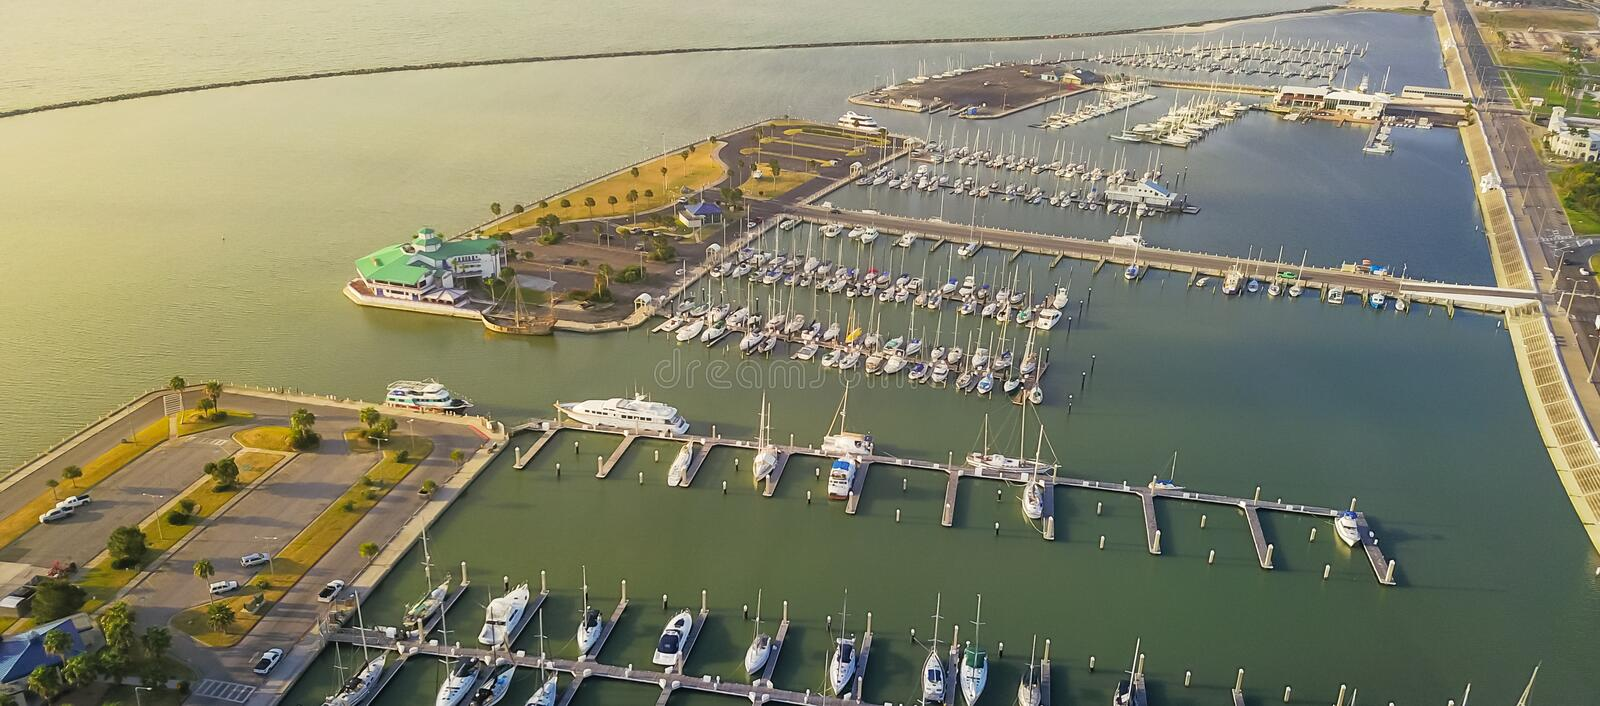 Panoramic view yacht parking in Corpus Christi, Texas bay front royalty free stock photos